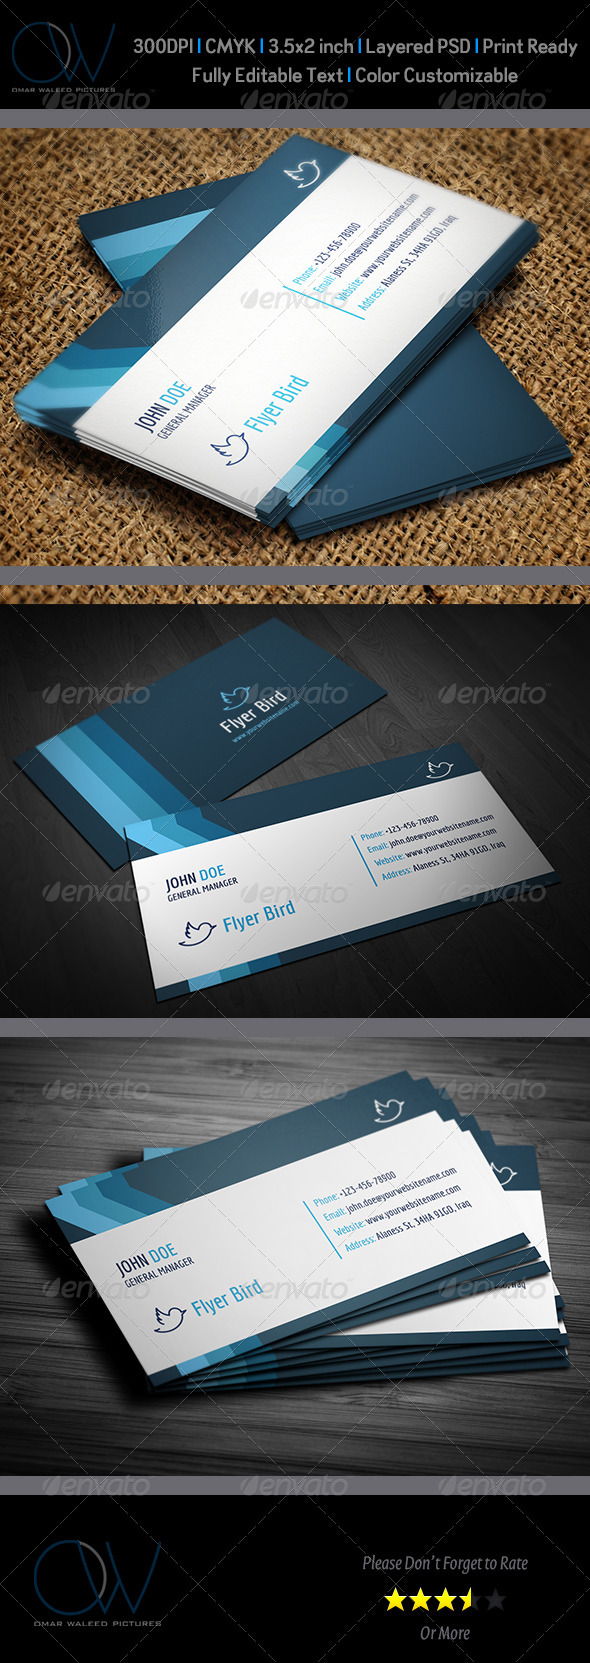 GraphicRiver Corporate Business Card Vol.16 3975611